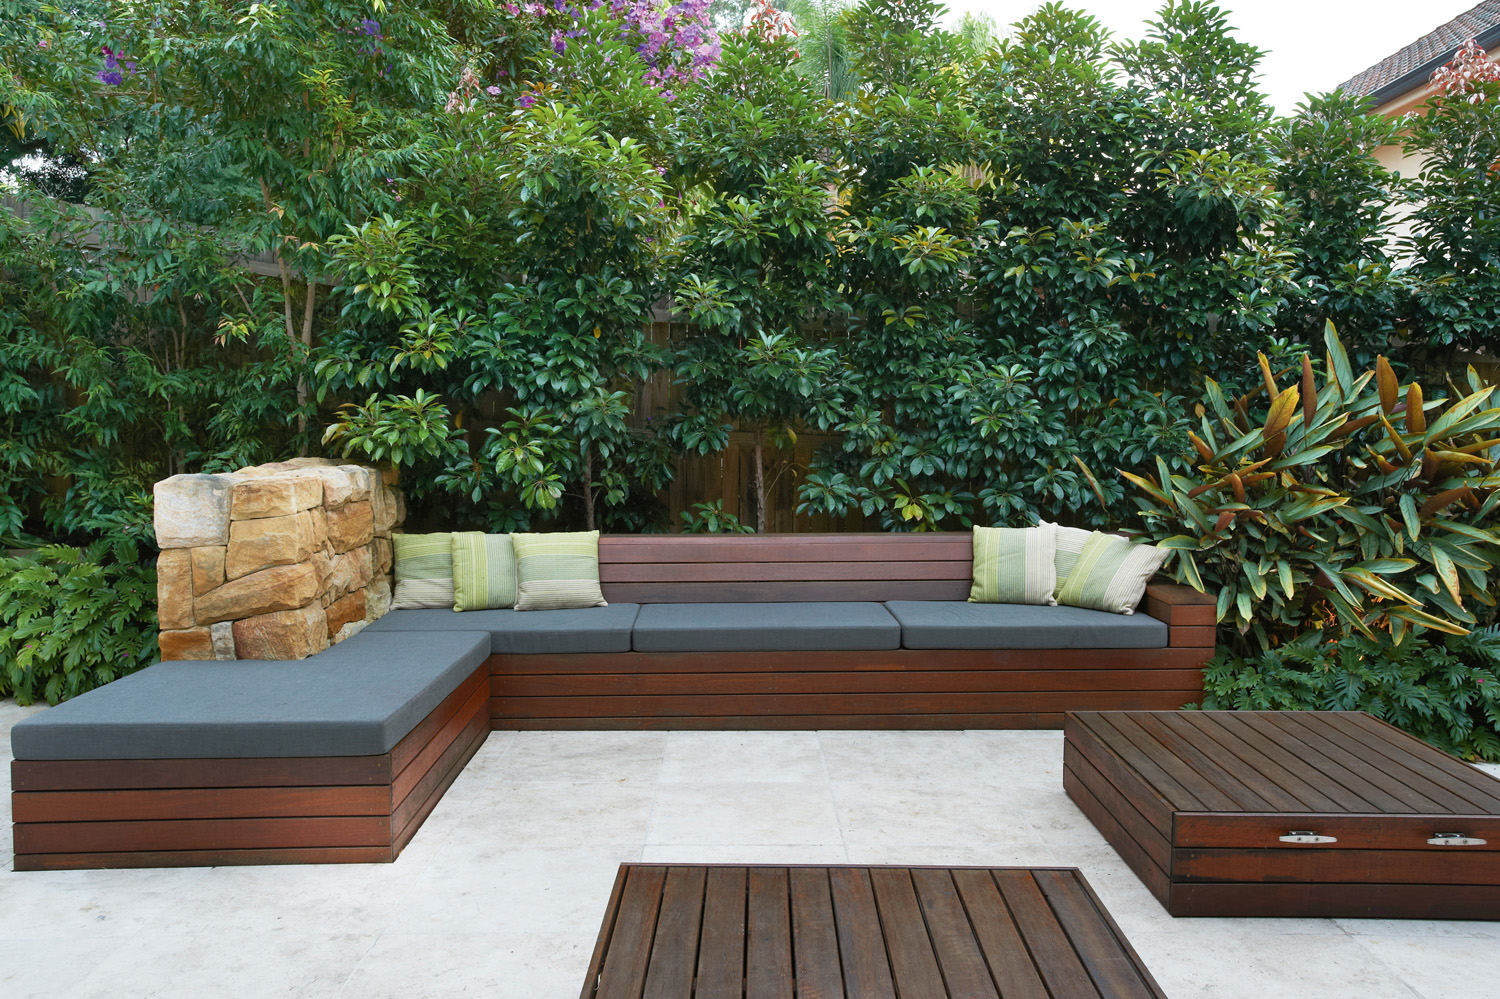 Modern, family-oriented outdoor area